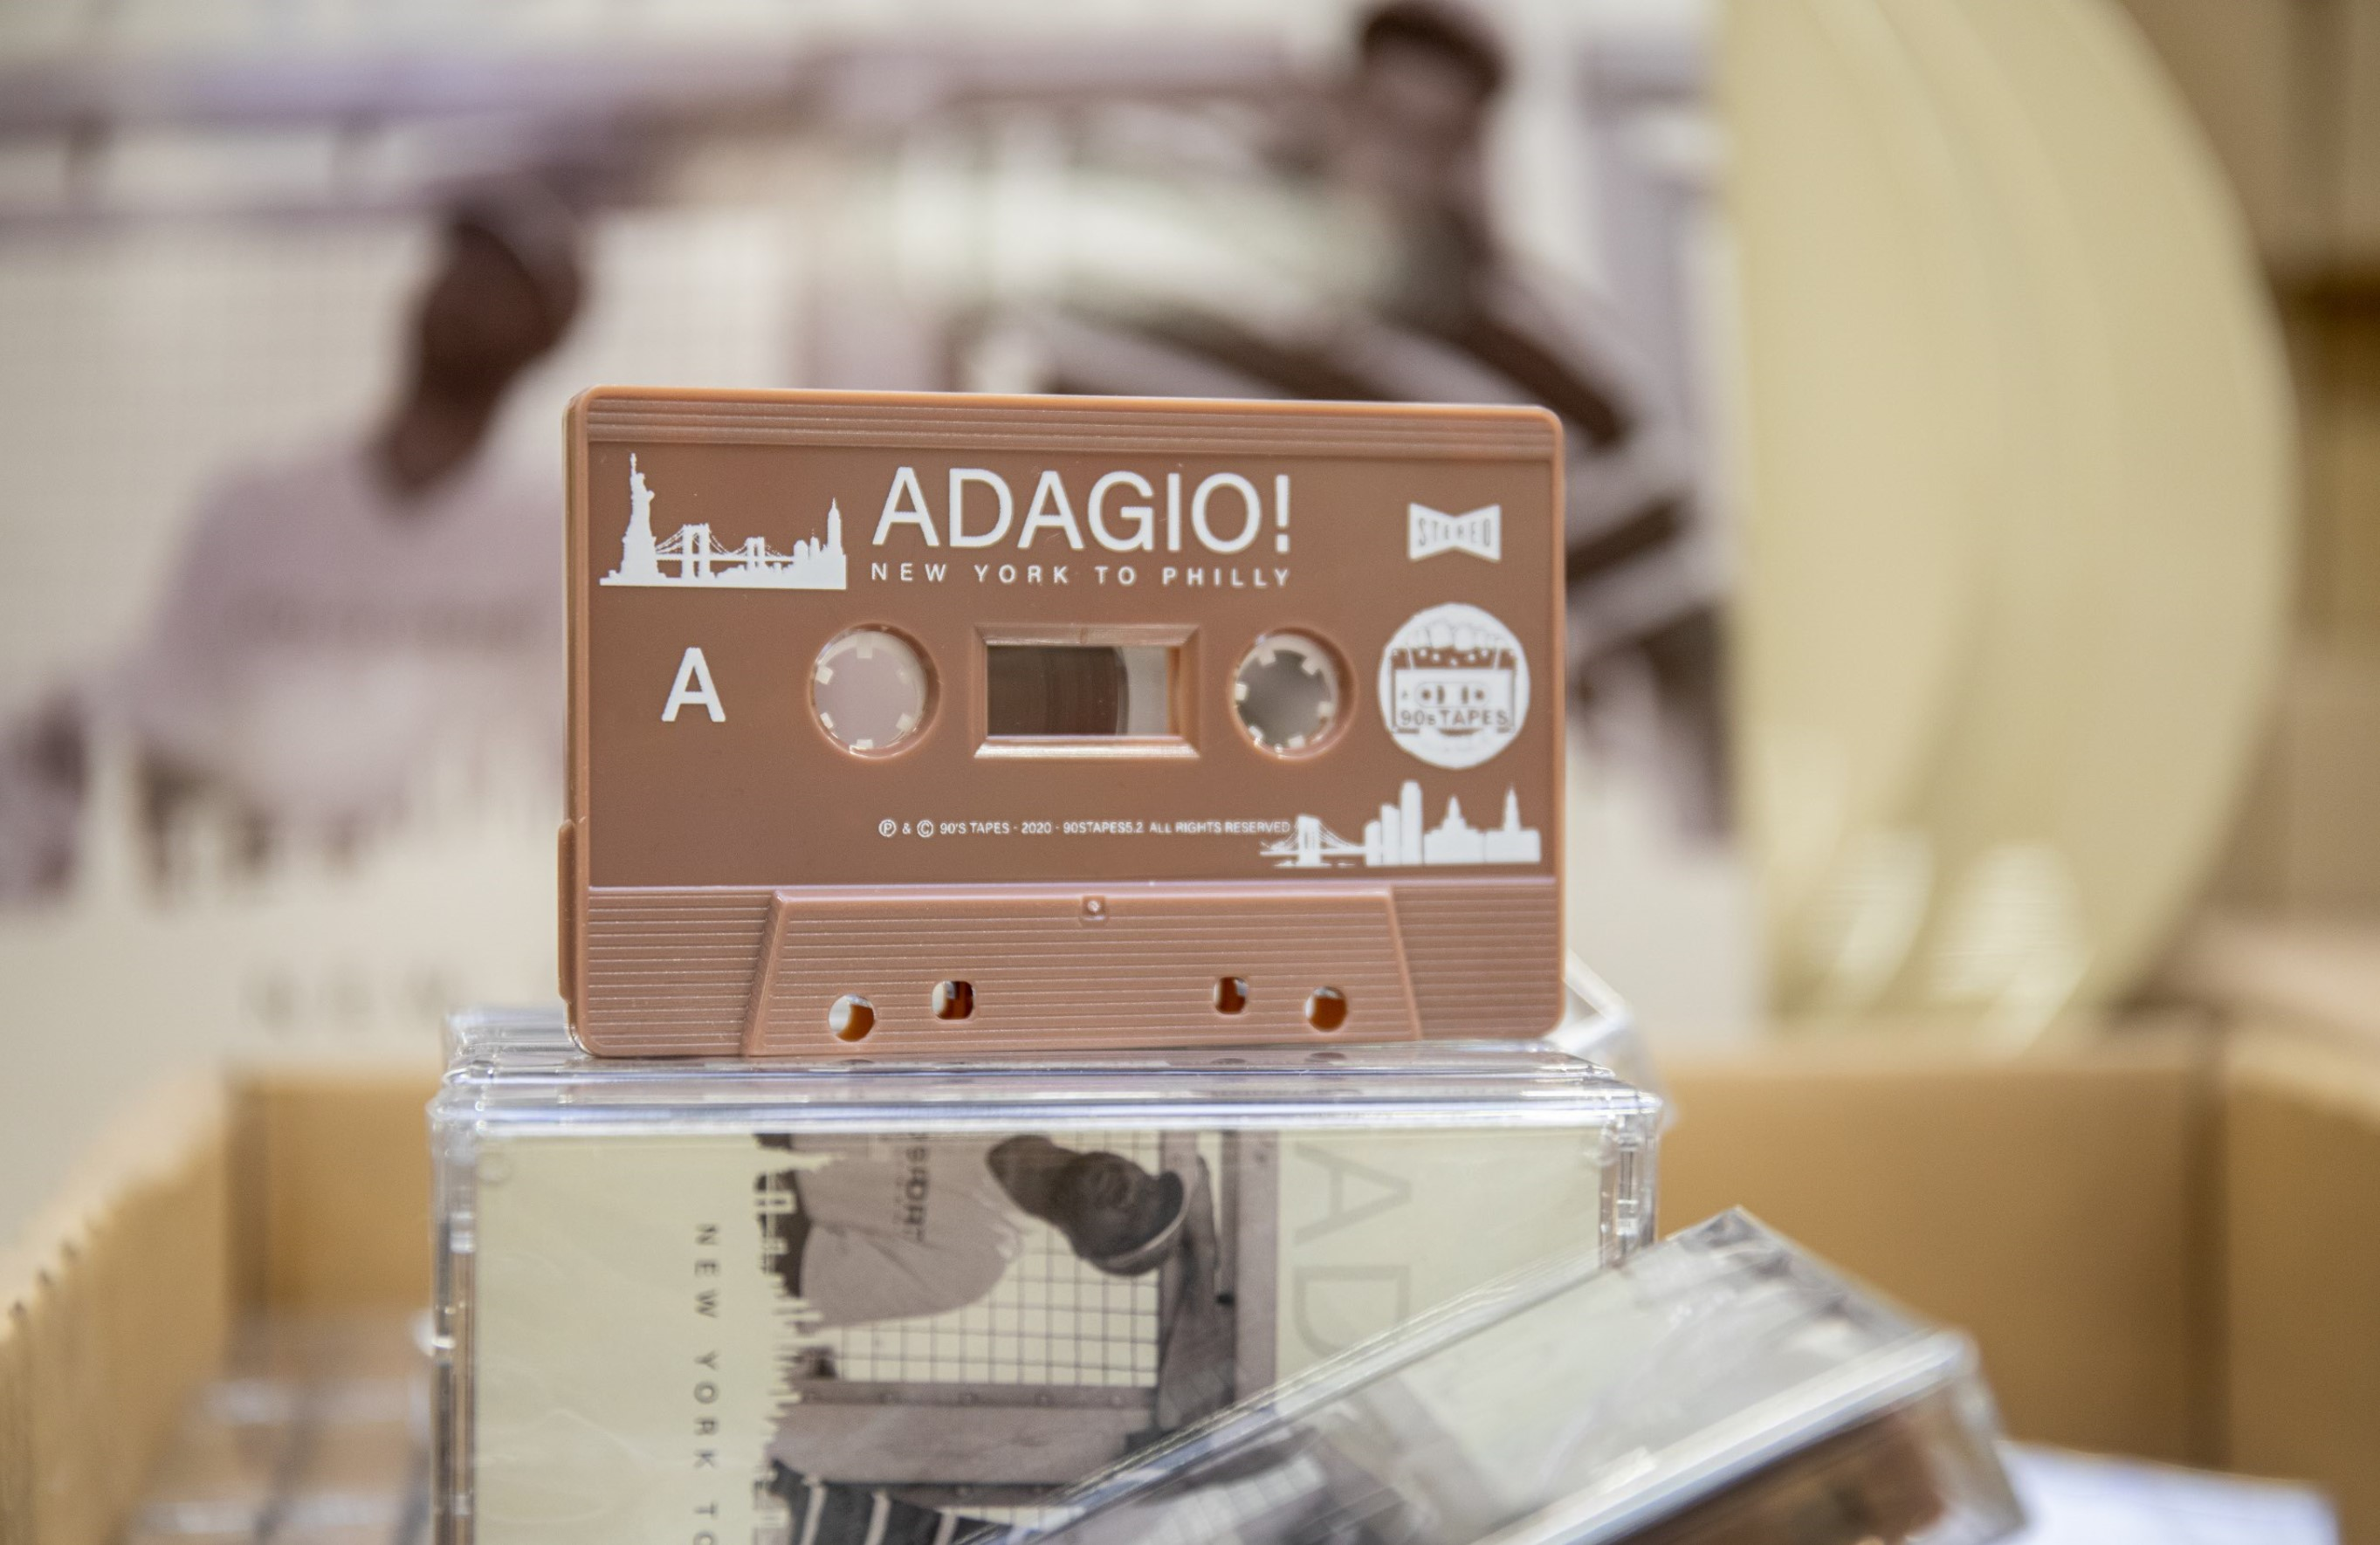 Adagio! Listen to 'New York to Philly' & Win a 90s Tapes Care Package (3LP, Cassette, CD & Shirt)